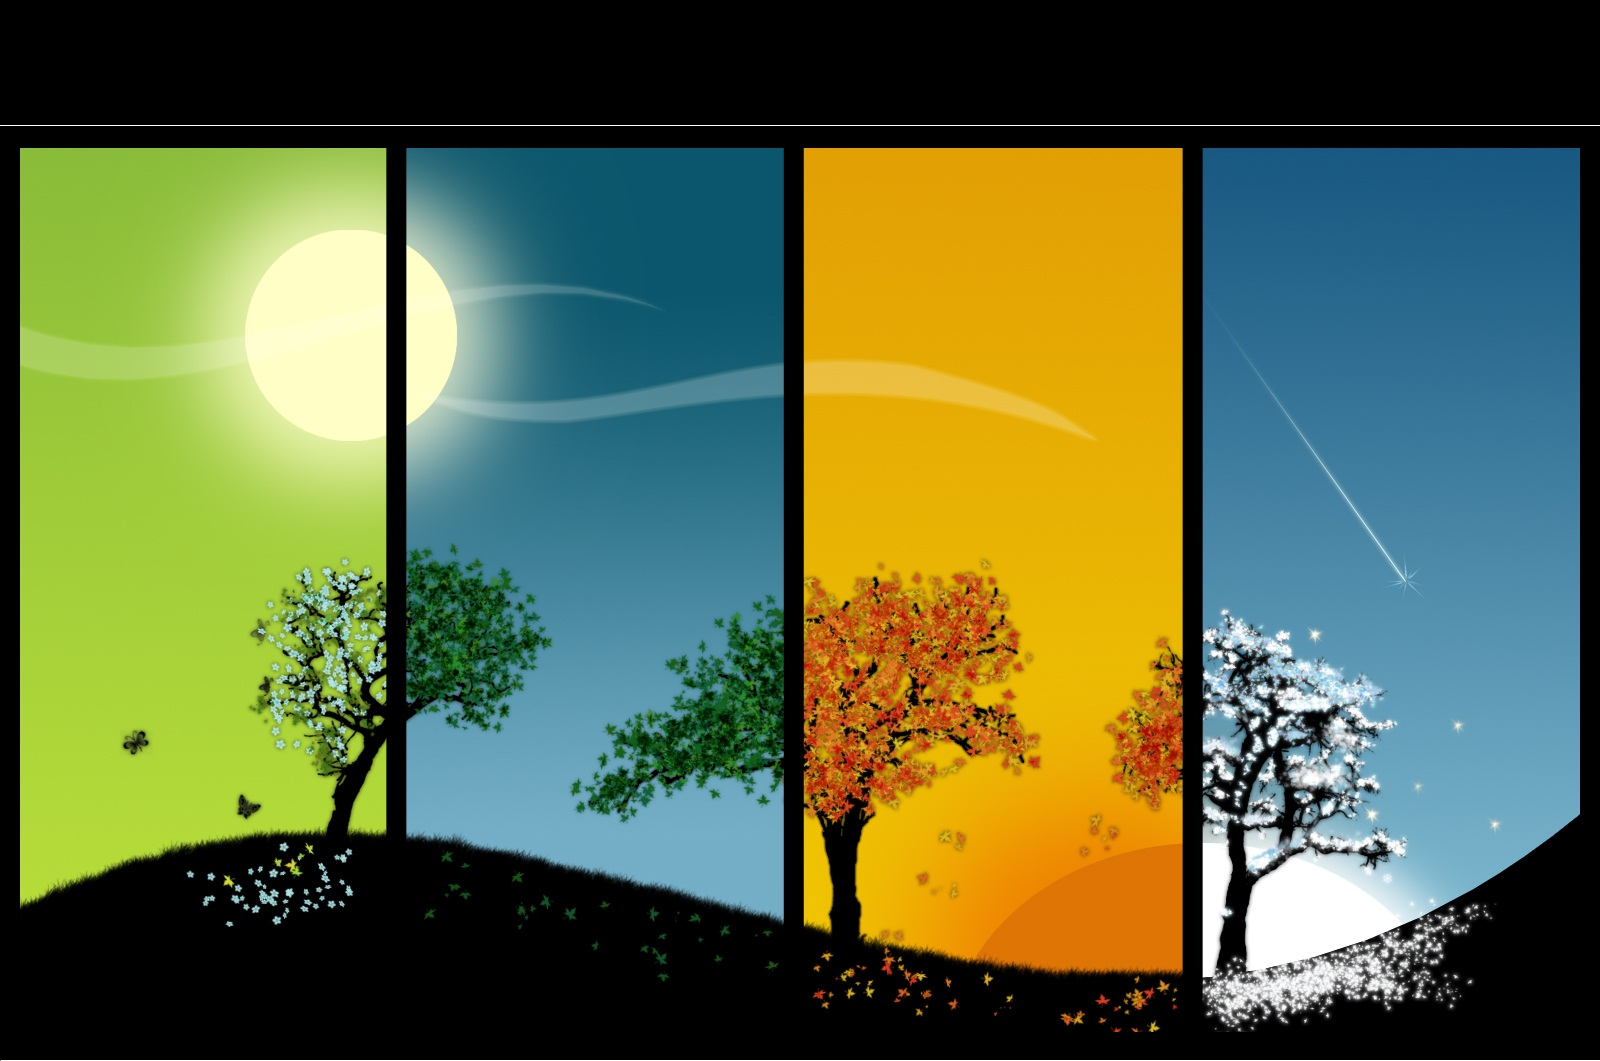 Shared landscape of trees depicting each season and time